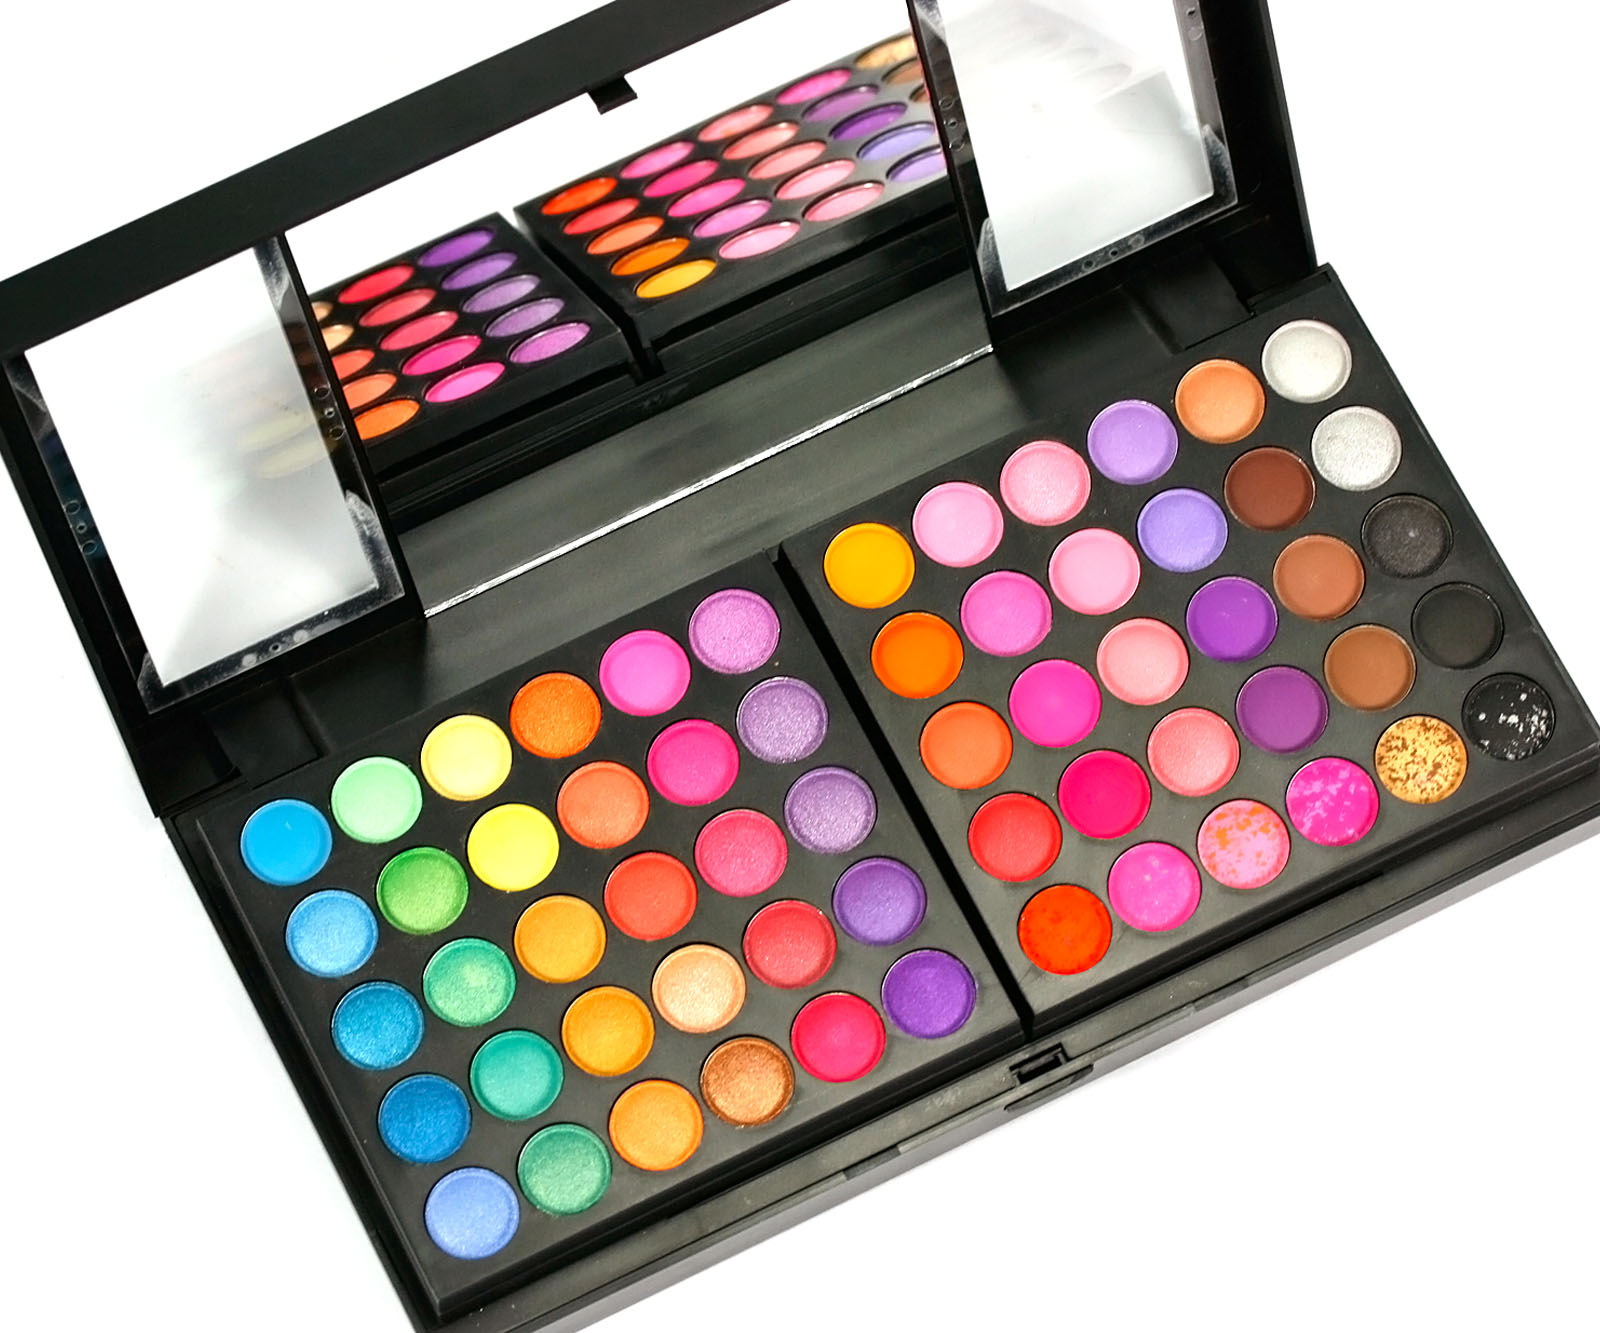 NEW 180 Color Beauty Cosmetic Party Makeup Eyeshadow Palette Kit | EBay